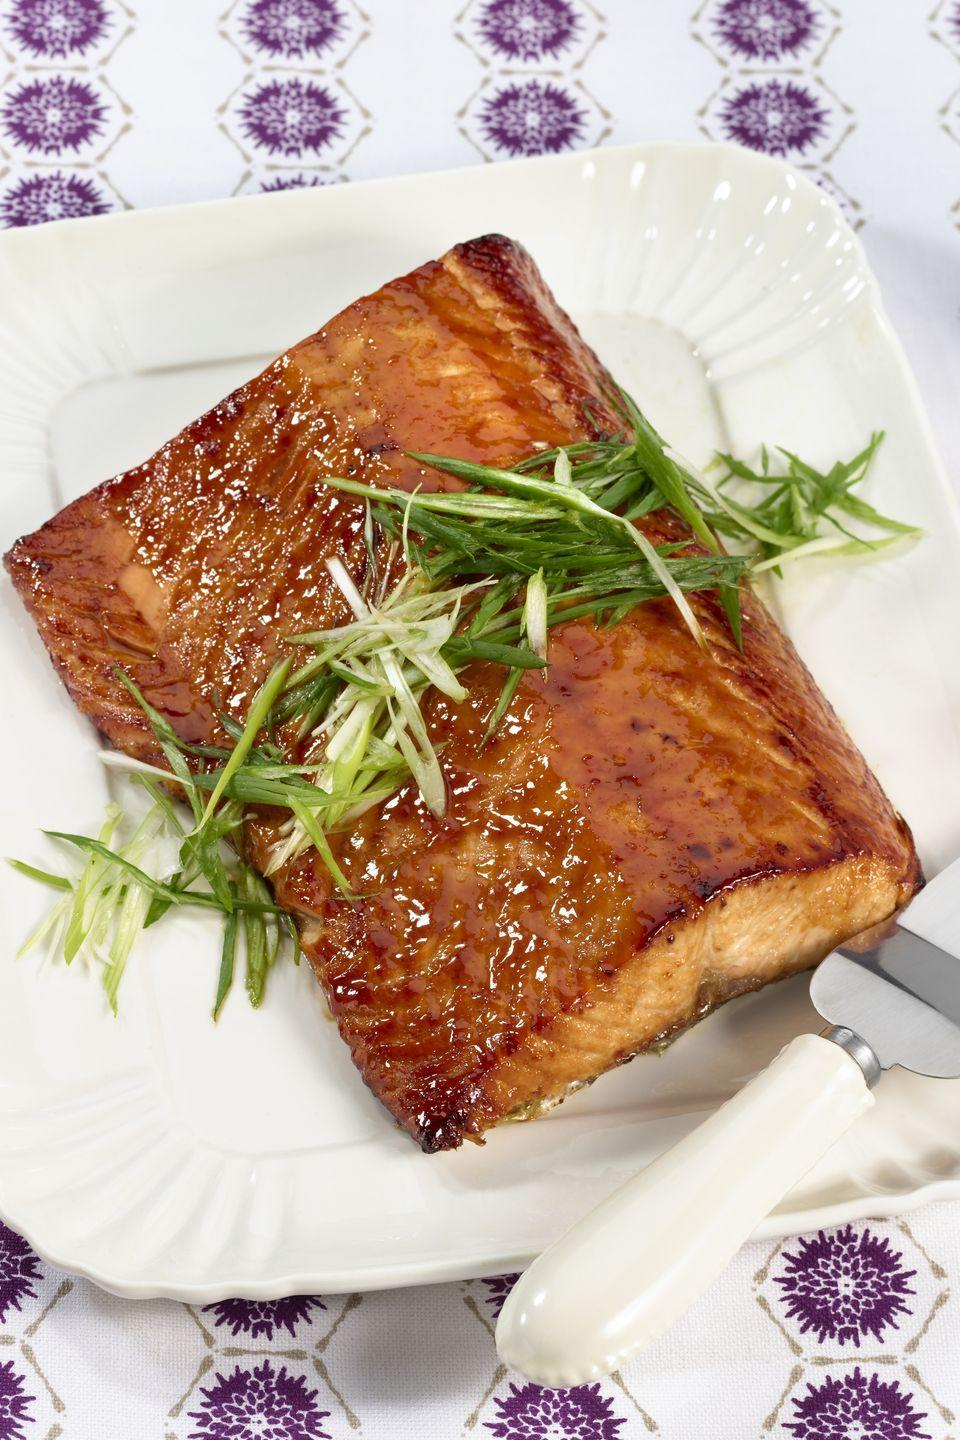 """<p>Sweet and salty flavors combine to glaze this melt-in-your-mouth salmon fillet. </p><p><strong><a href=""""https://www.countryliving.com/food-drinks/recipes/a1889/pineapple-soy-glazed-salmon-4059/"""" rel=""""nofollow noopener"""" target=""""_blank"""" data-ylk=""""slk:Get the recipe"""" class=""""link rapid-noclick-resp"""">Get the recipe</a>.</strong></p>"""